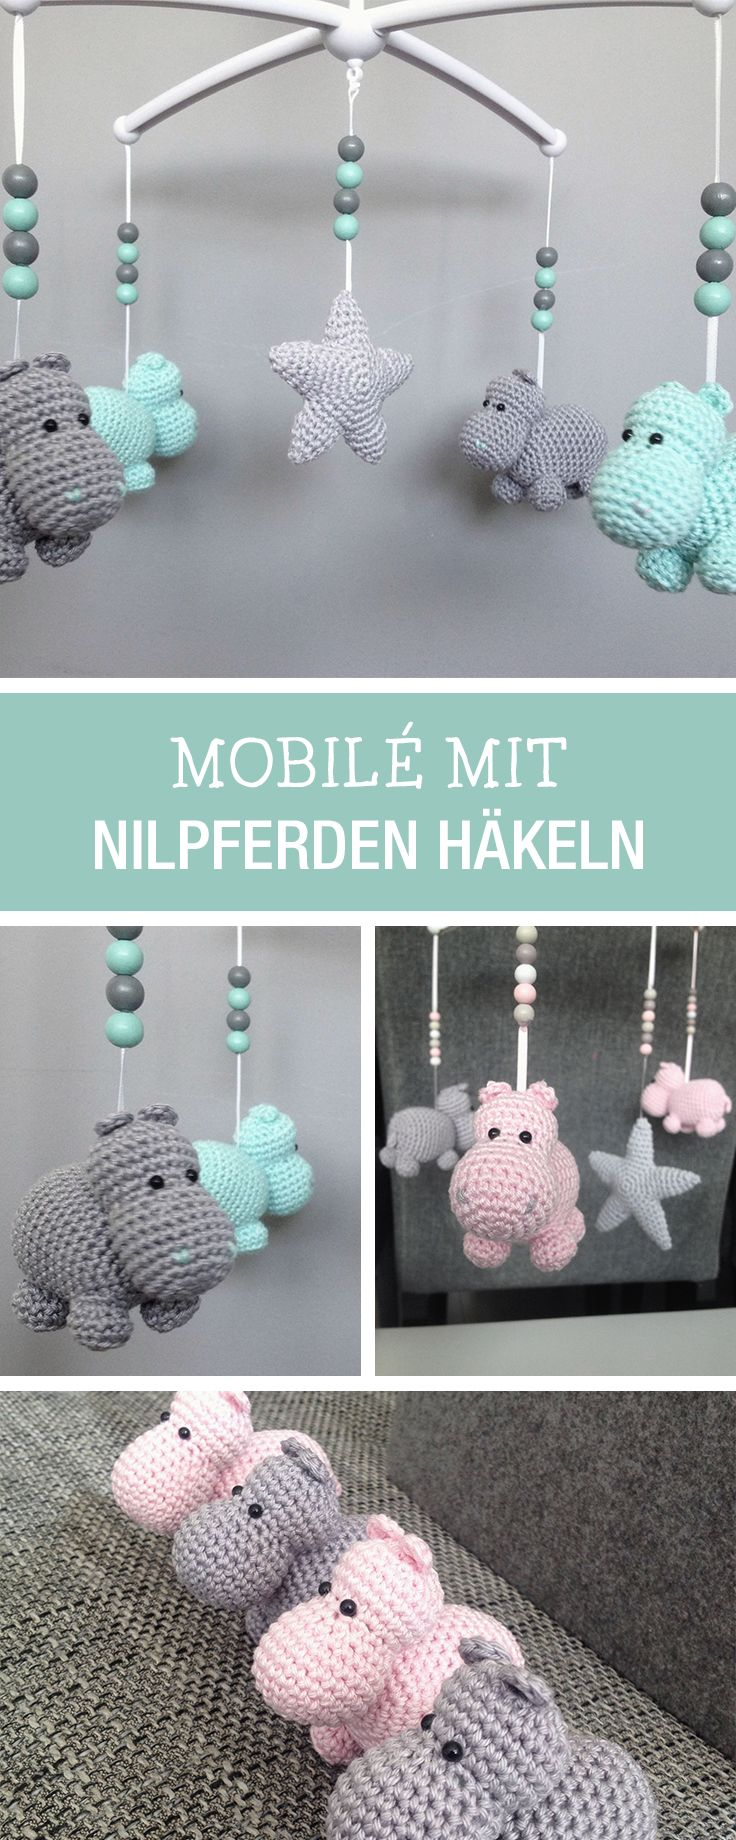 DIY-Anleitung: Fliegende Nilpferde als Mobile häkeln, Kinderzimmerdeko / DIY tutorial: crocheting flying hippos as mobile for your baby to fall asleep via DaWanda.com